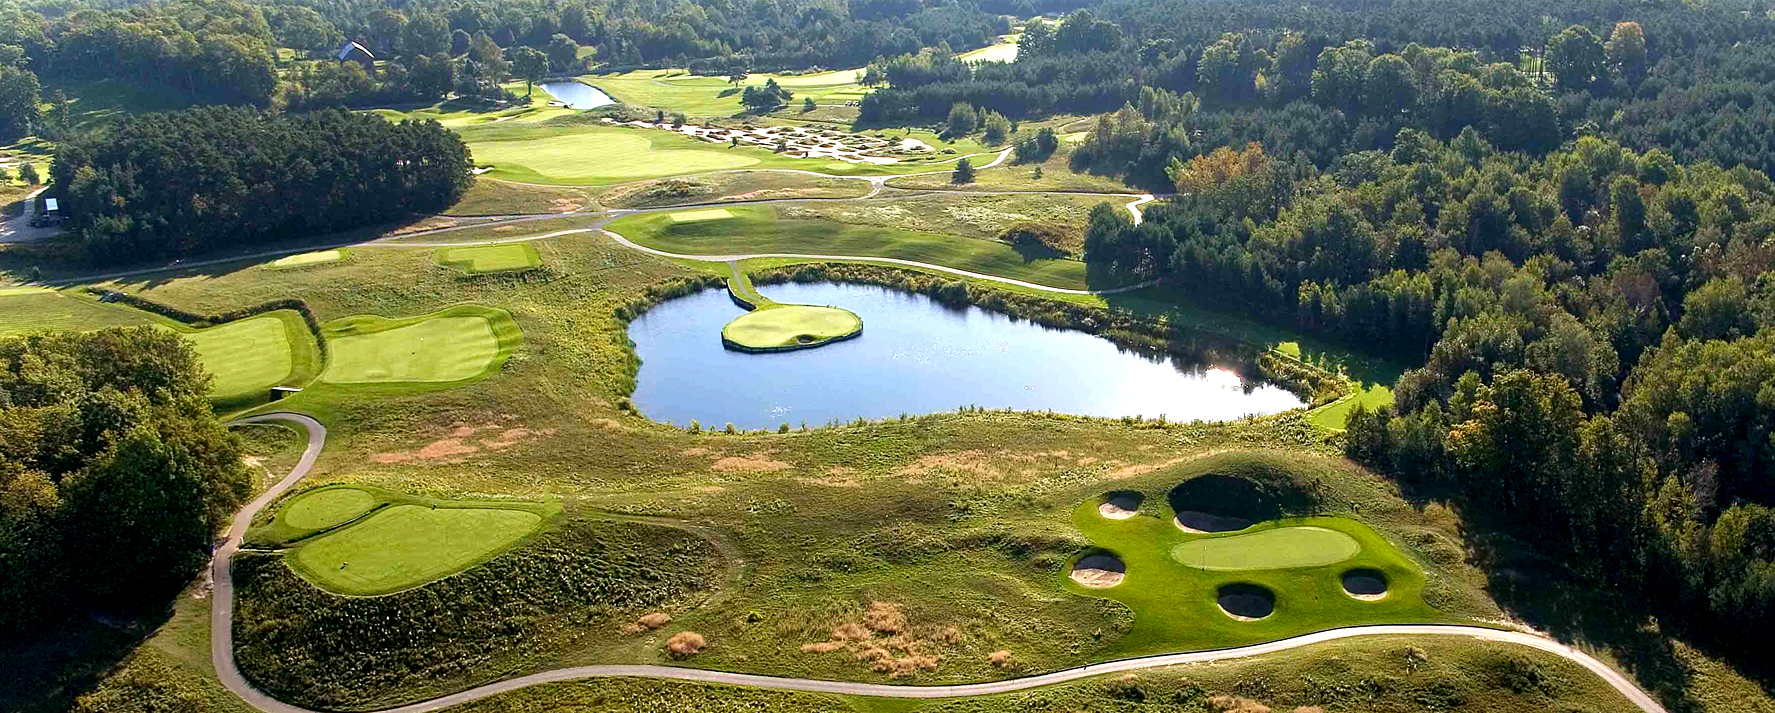 Wooden Stick golf course viewed from overhead